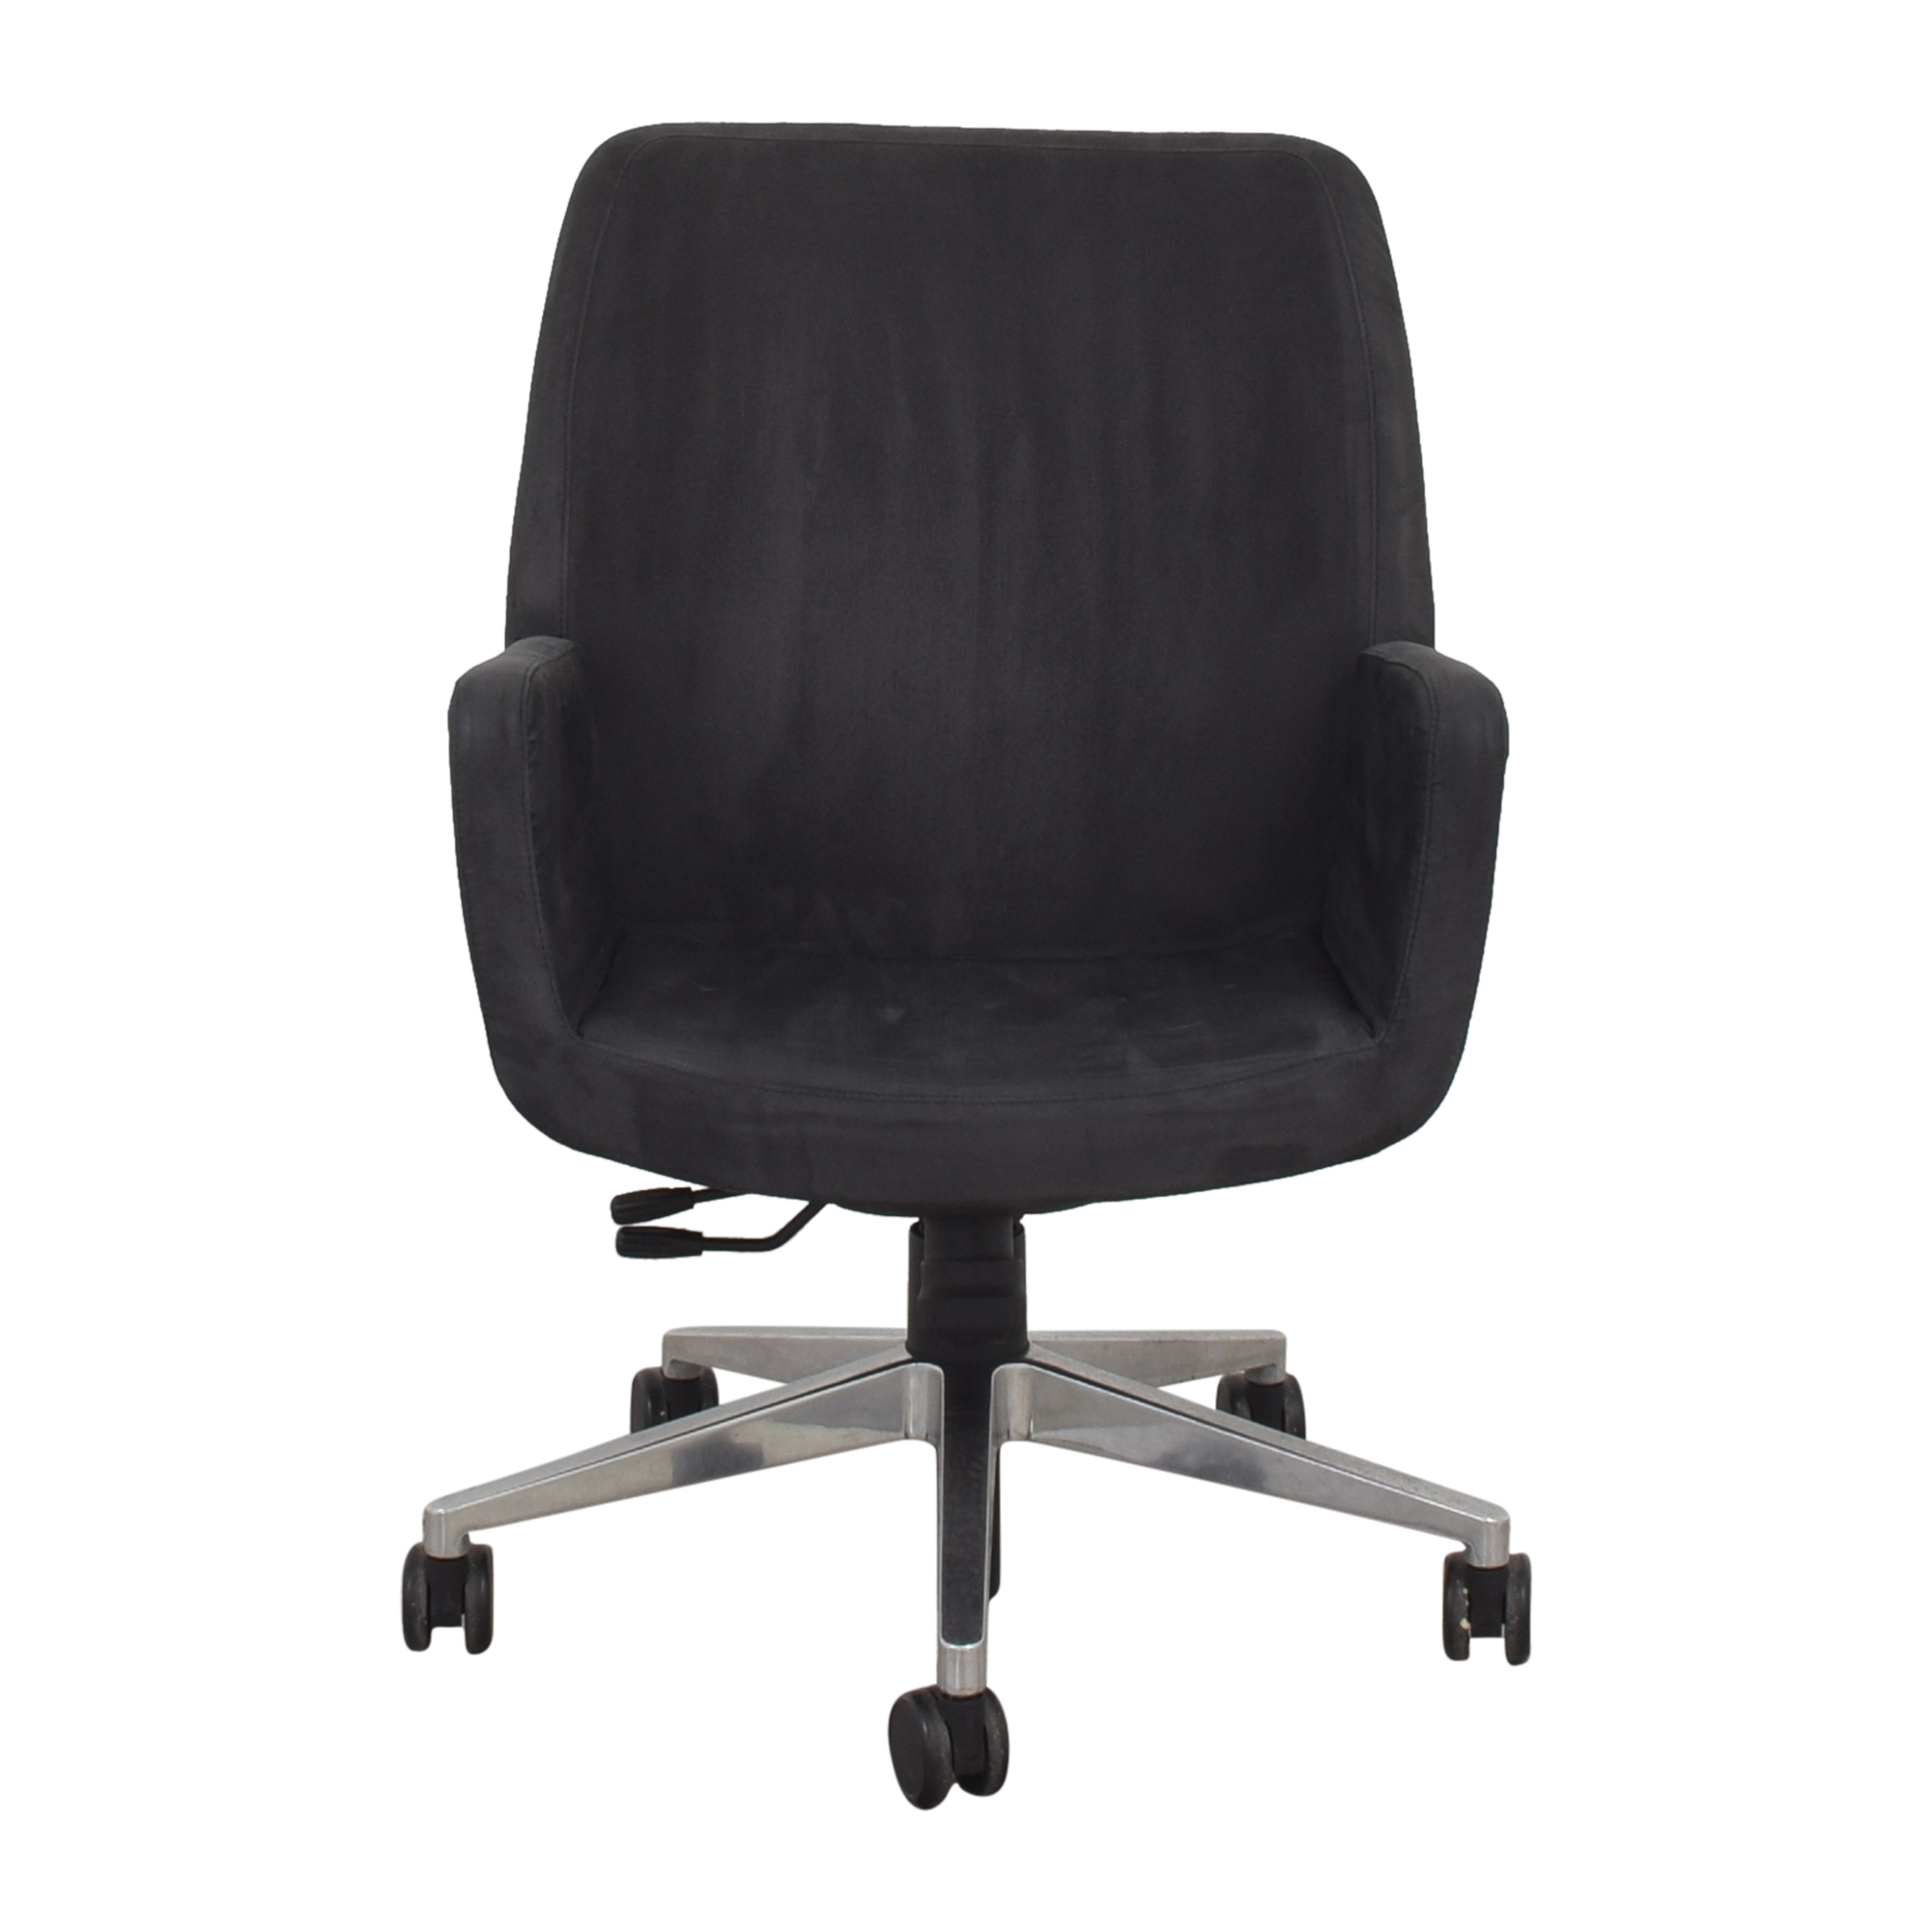 Steelcase Steelcase Coalesse Bindu Guest Chair on sale